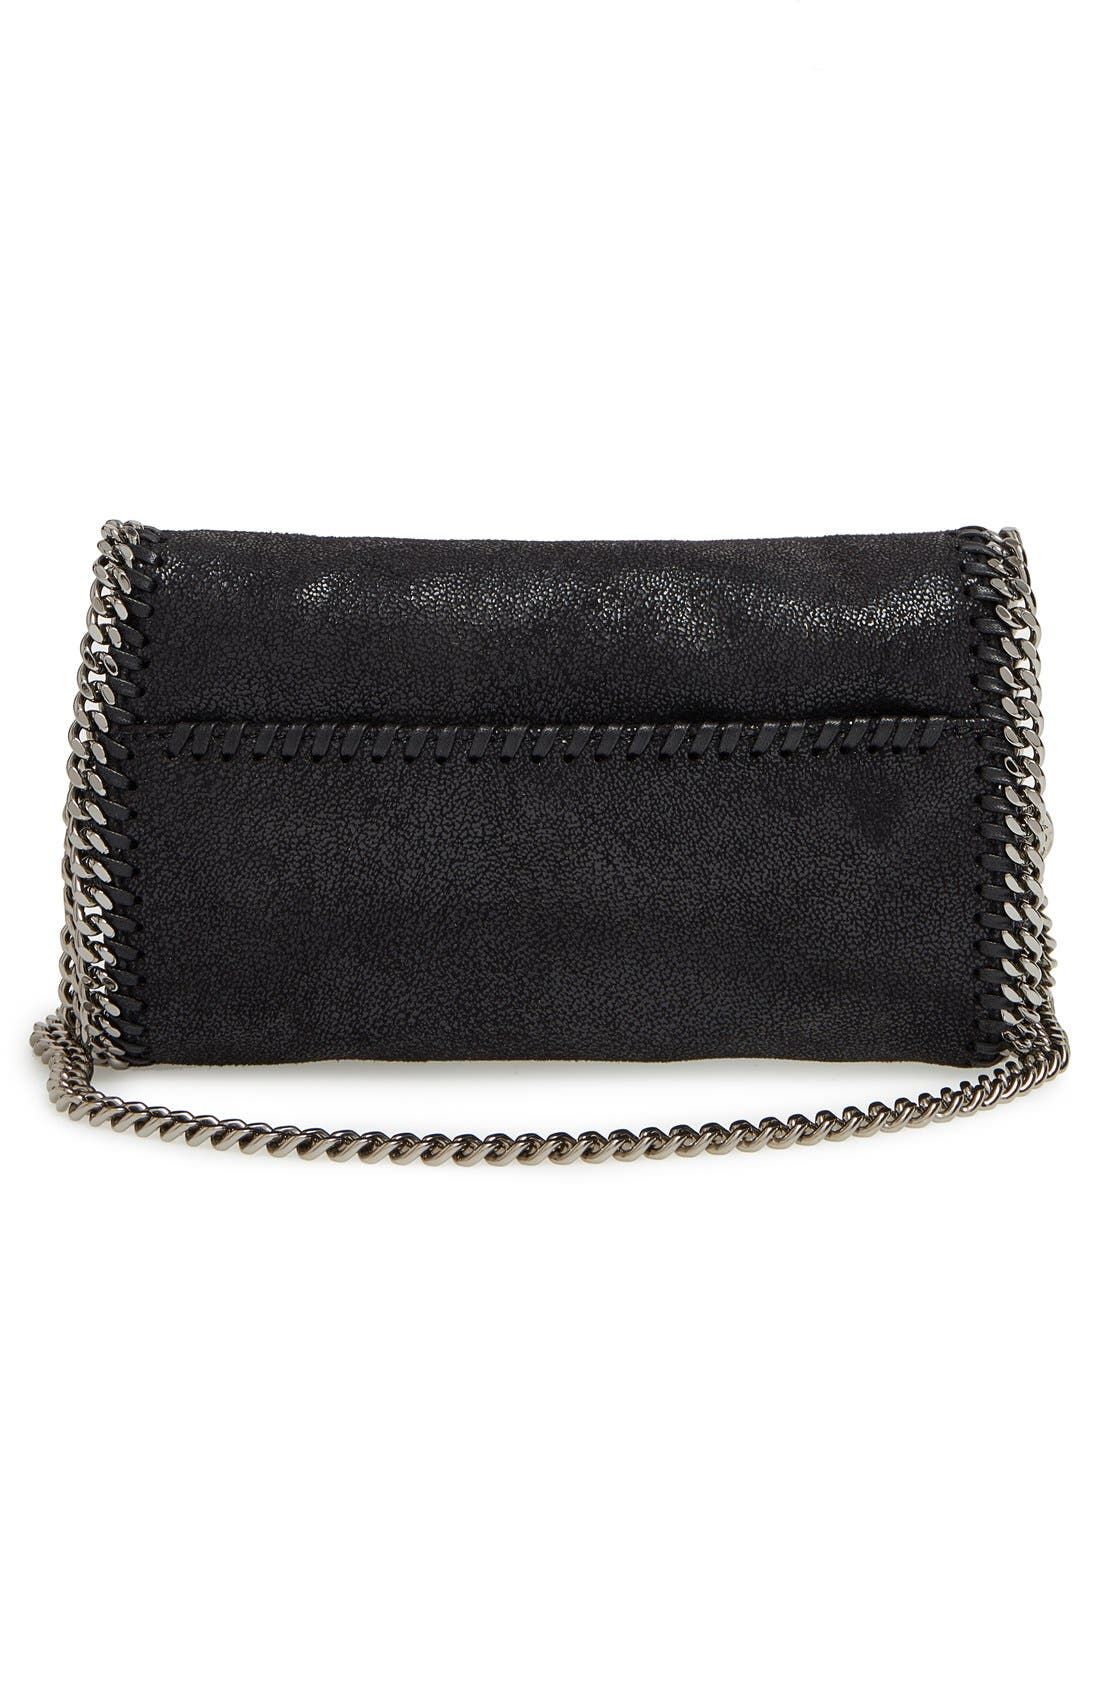 STELLA MCCARTNEY,                             'Falabella Crystal' Embellished Faux Leather Crossbody Bag,                             Alternate thumbnail 4, color,                             001